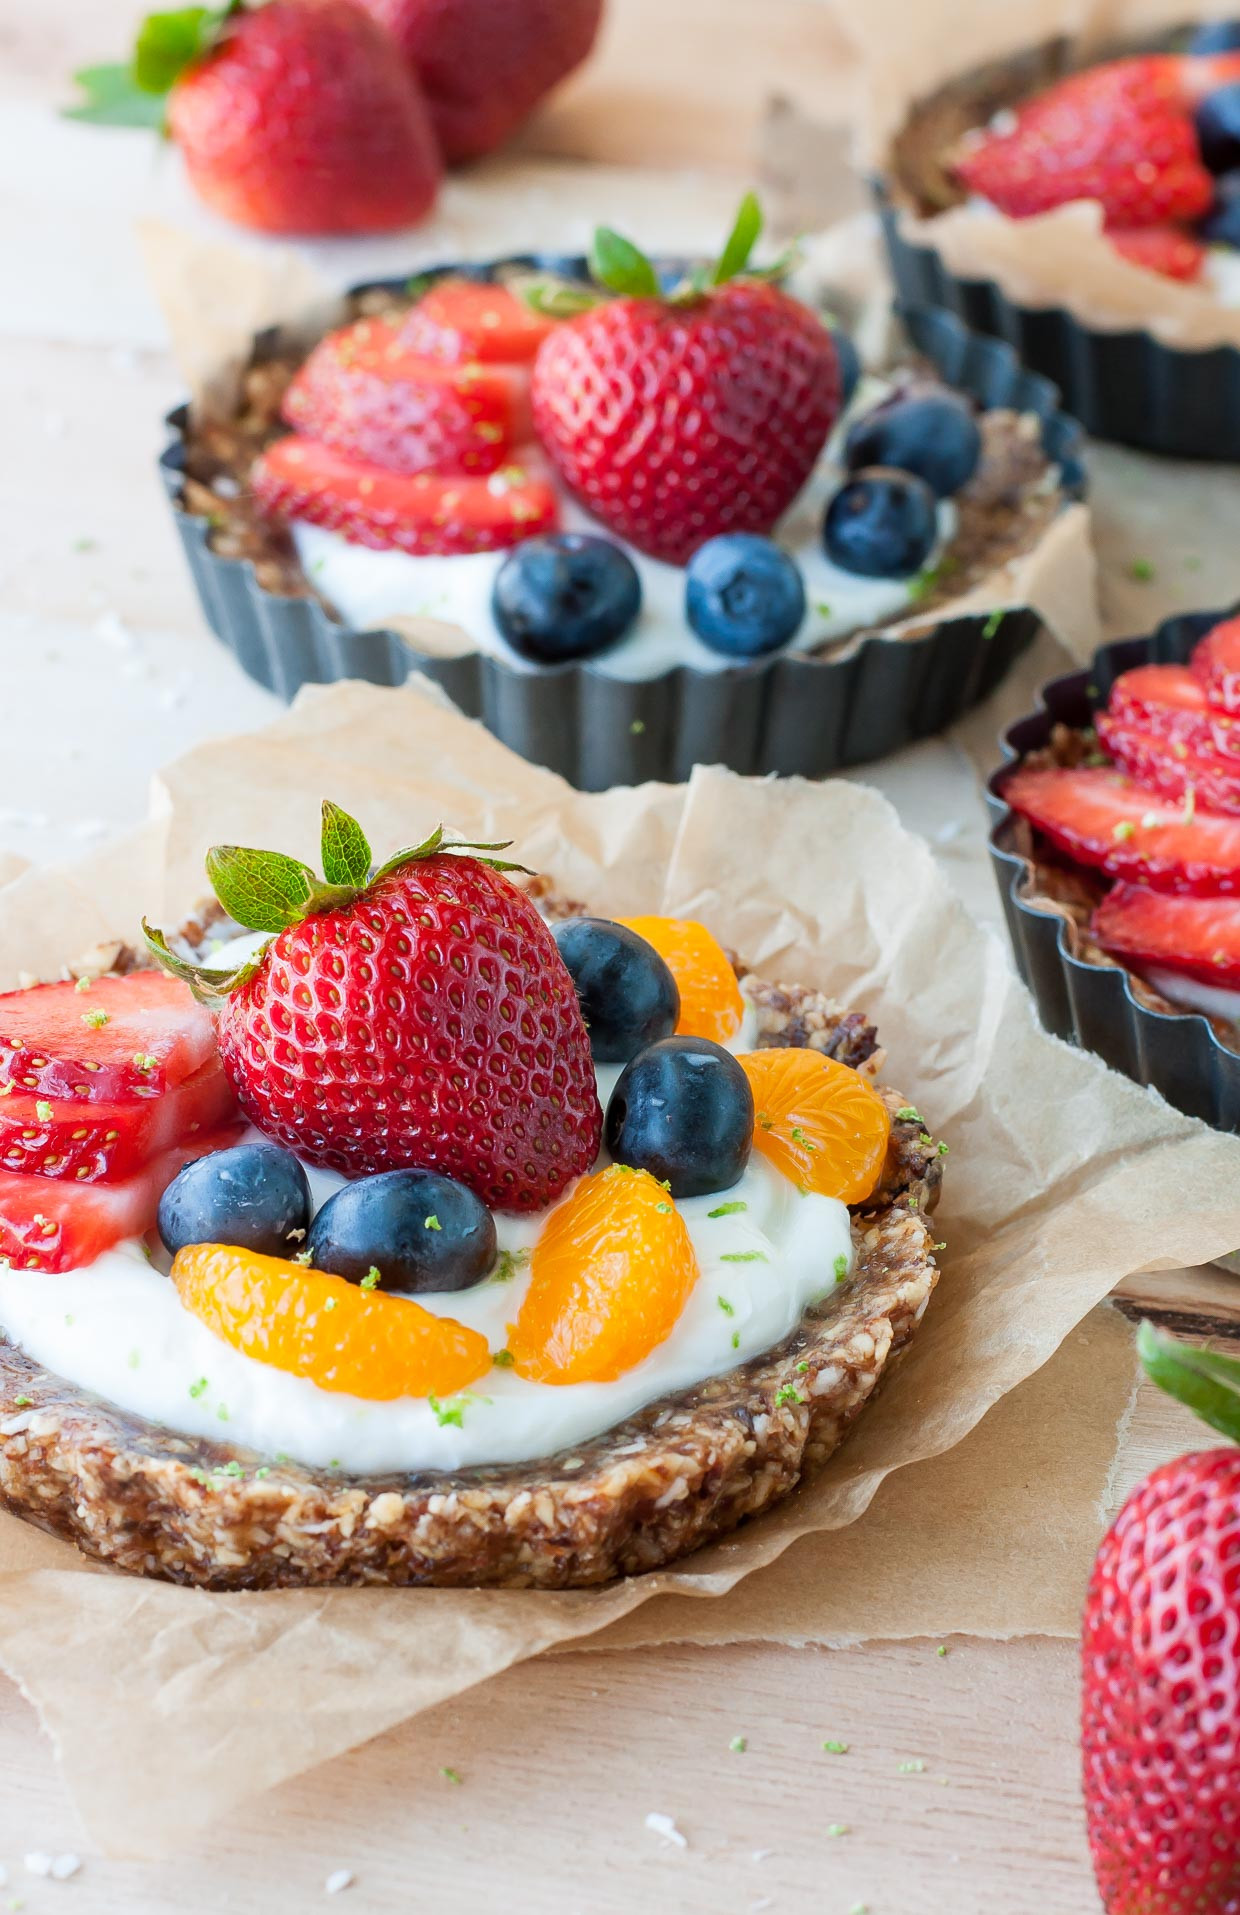 Baked Fruit Desserts  Healthy No Bake Coconut Lime Fruit and Yogurt Tarts Peas